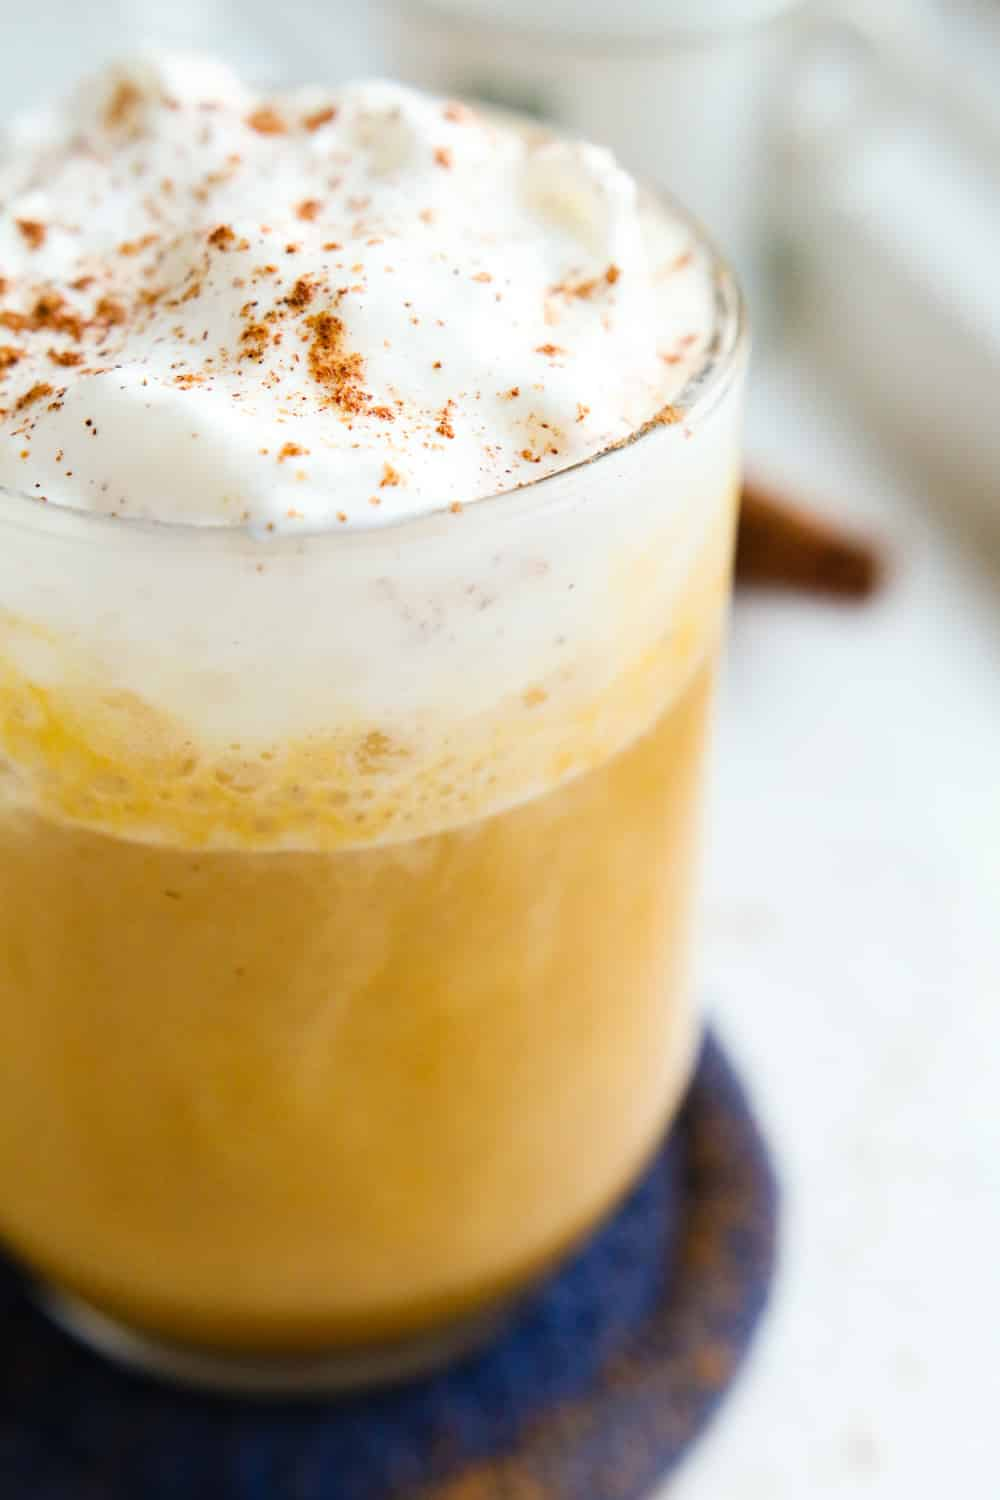 A pumpkin spice latte topped with whipped cream and spices.